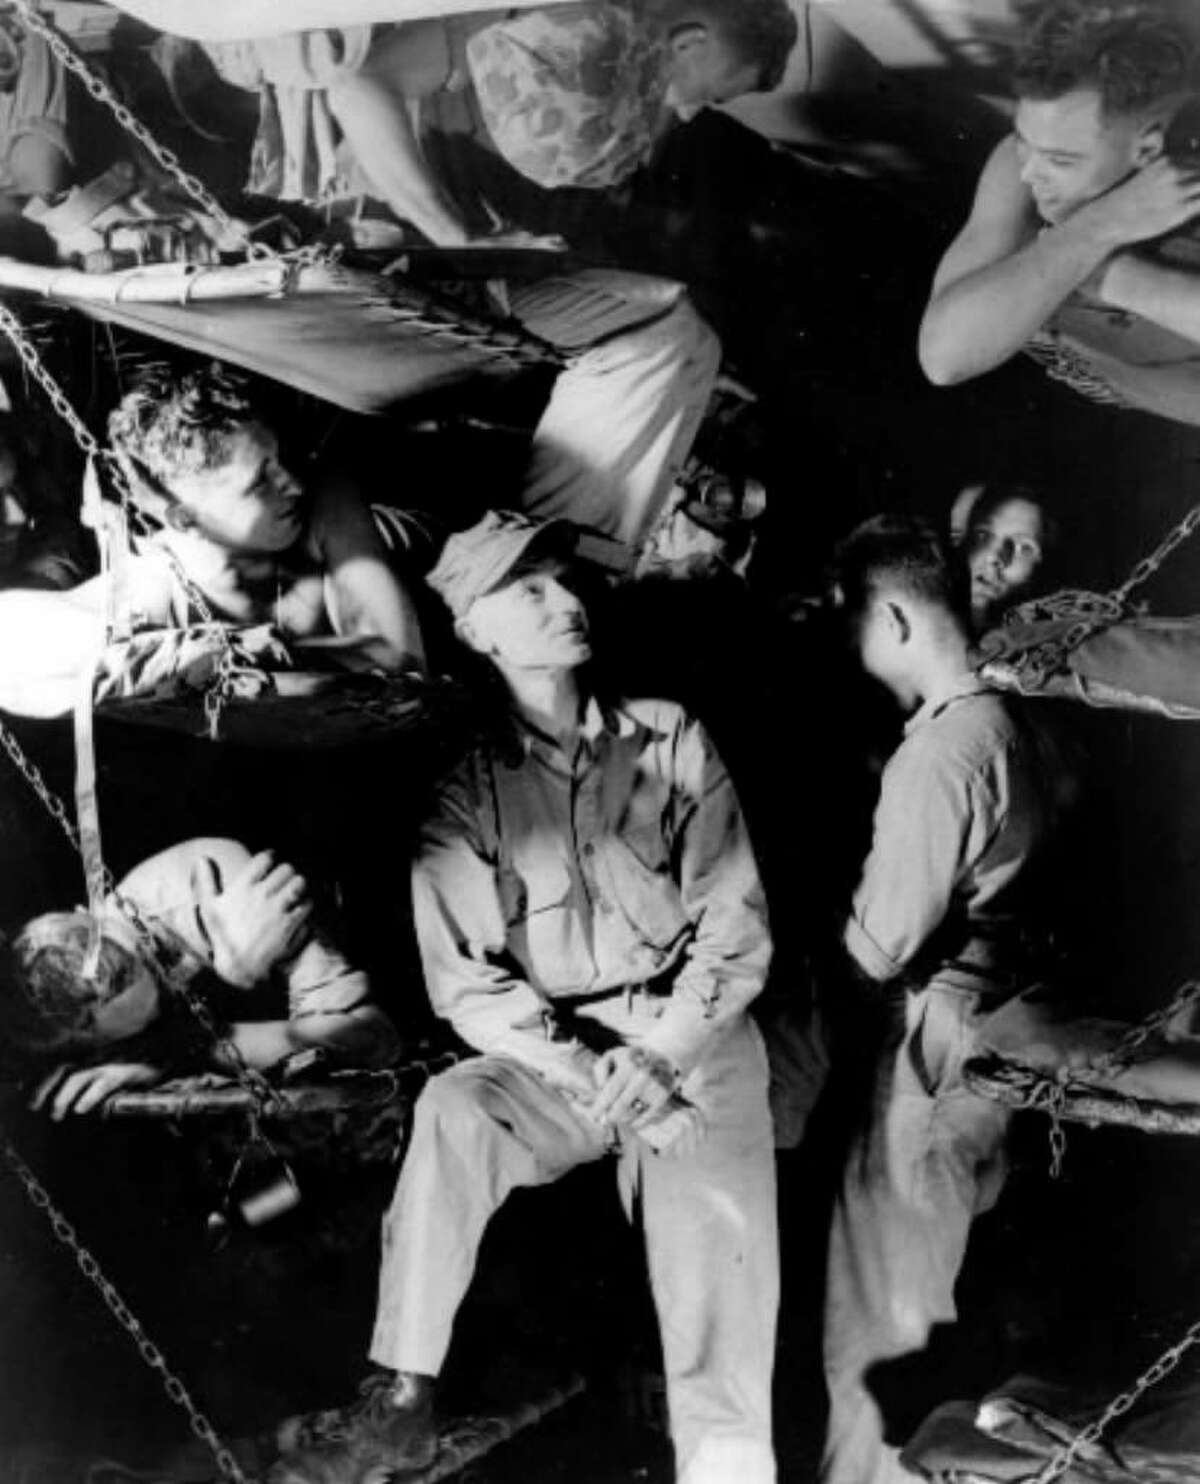 American war correspondent Ernie Pyle, center, talks with Marines below decks on a U.S. Navy transport while en route to the invasion of Okinawa during World War II, in this March 1945 file photo. Pyle was killed on April 18, 1945, by Japanese machine-gun fire on the island of Ie Shima in the southwestern Pacific Ocean near Okinawa. (Associated Press archive)